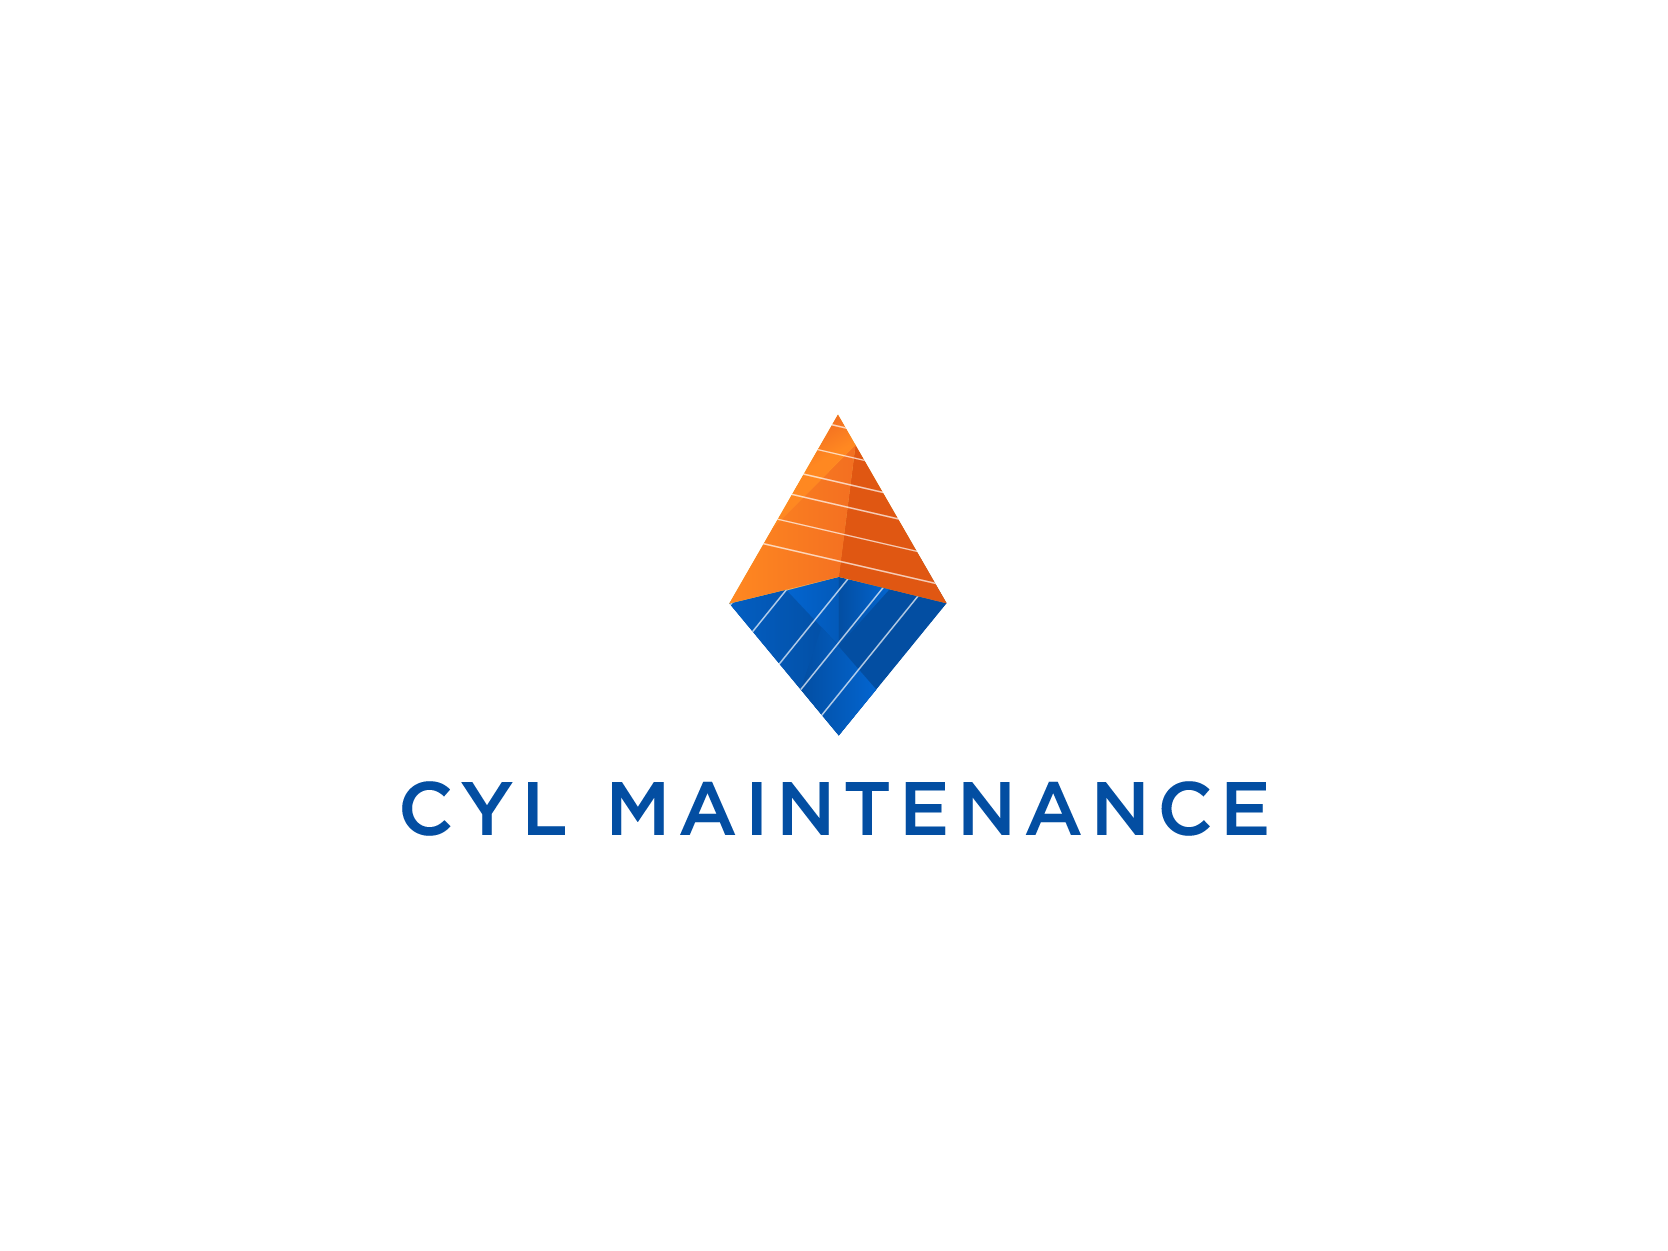 CYL Maintenance Logo Design